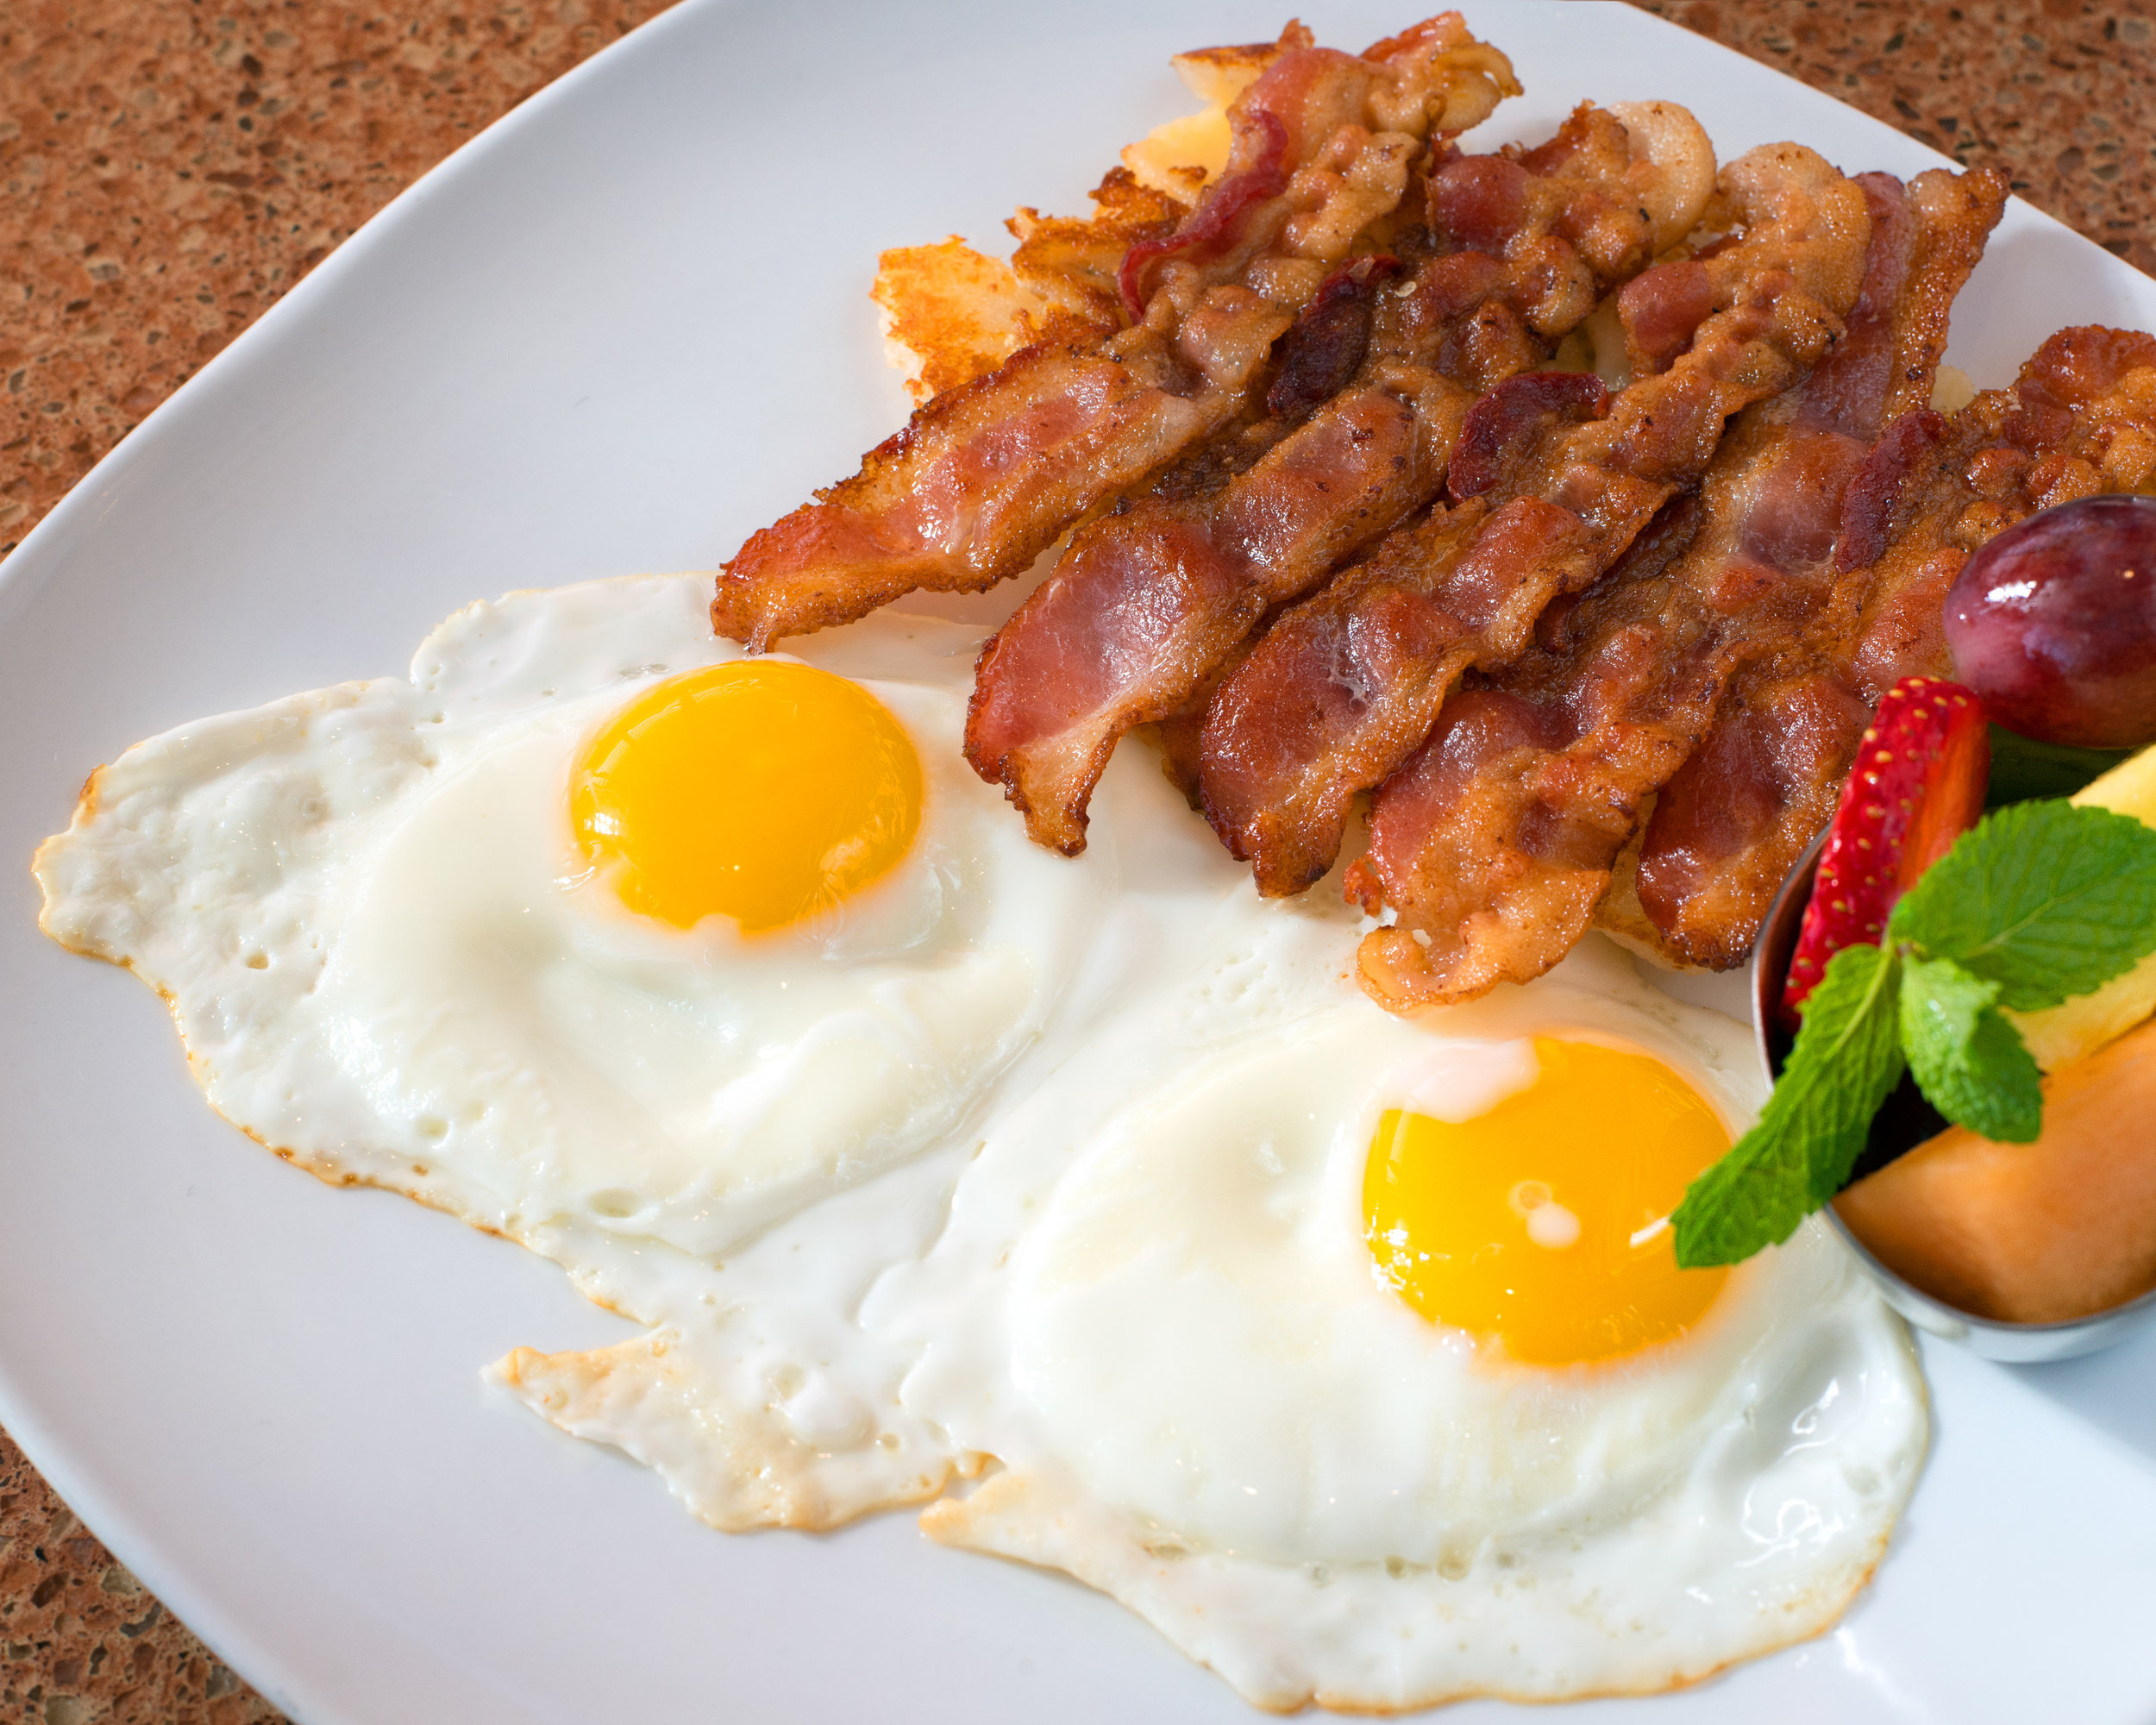 ImperialDiner_TwoEggsWithBacon_2880x2304.jpg